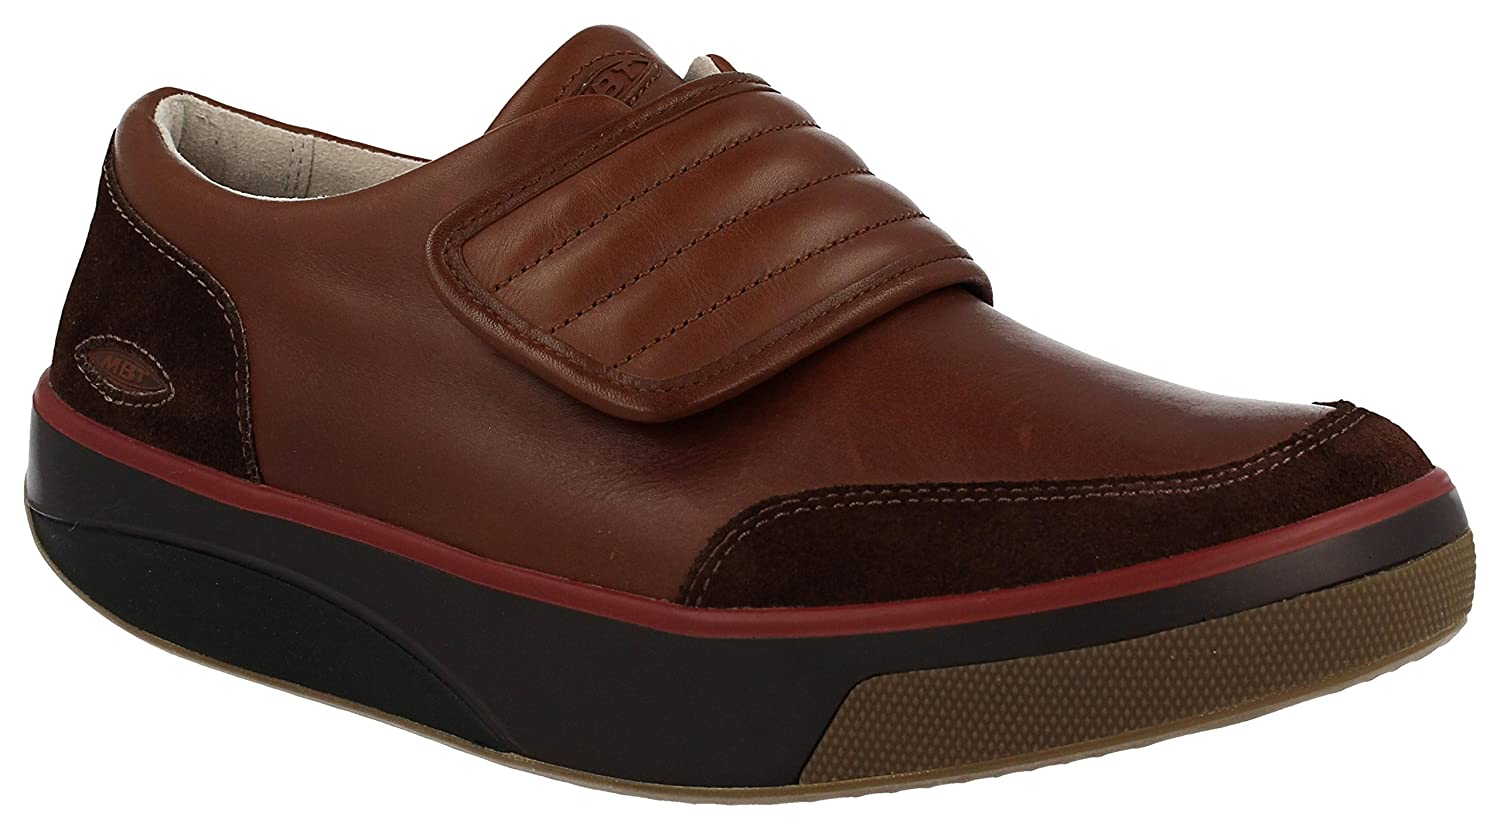 39098c5d67e6 MBT Men s Dahoma Cappuccino Leather Suede 40 Medium free shipping ...